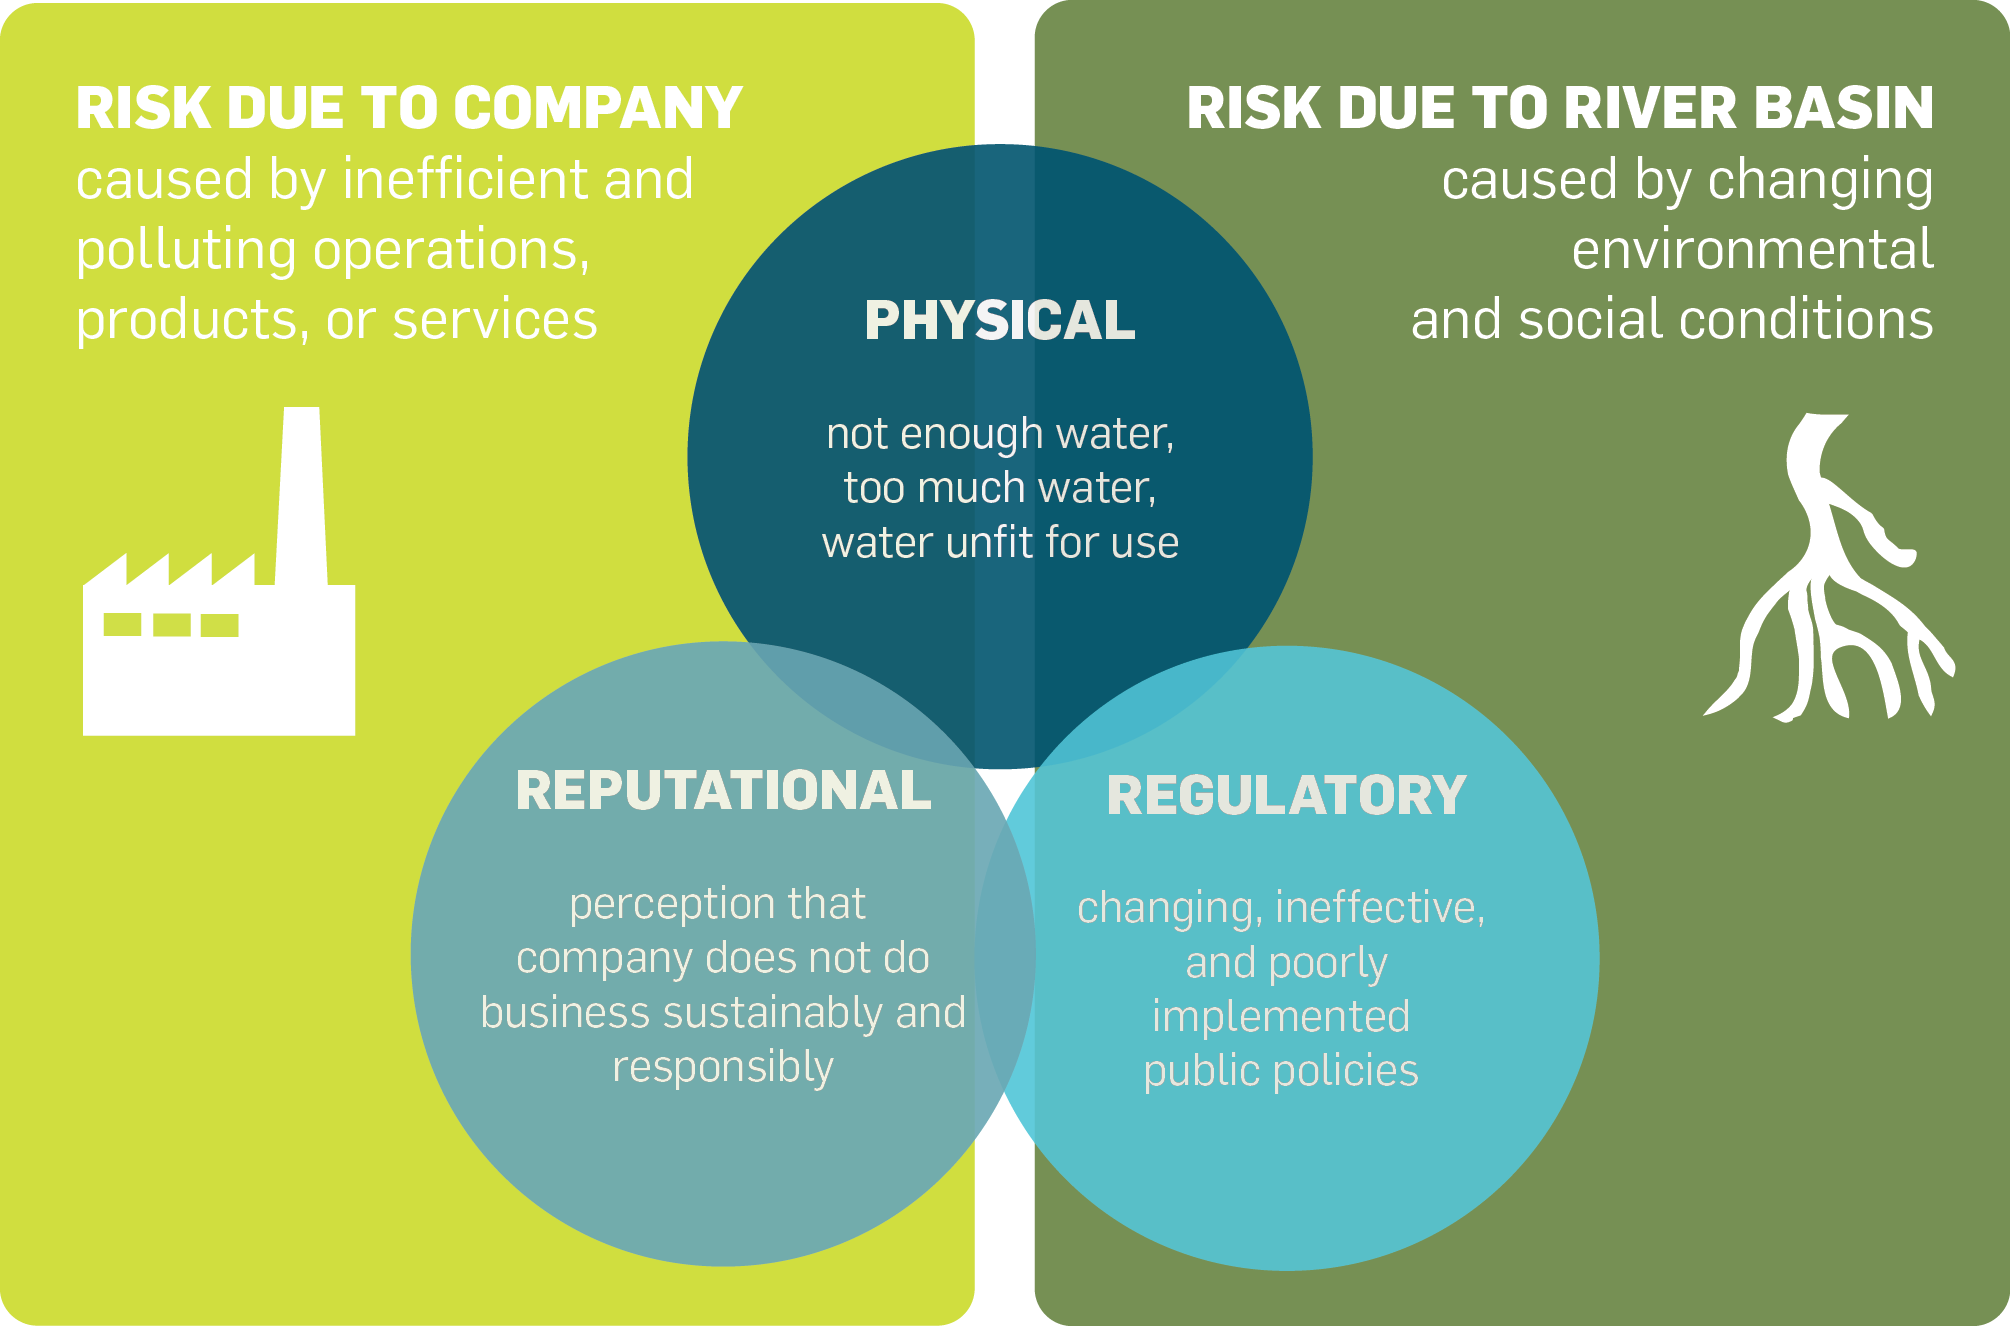 risk due to company and river basin graphic